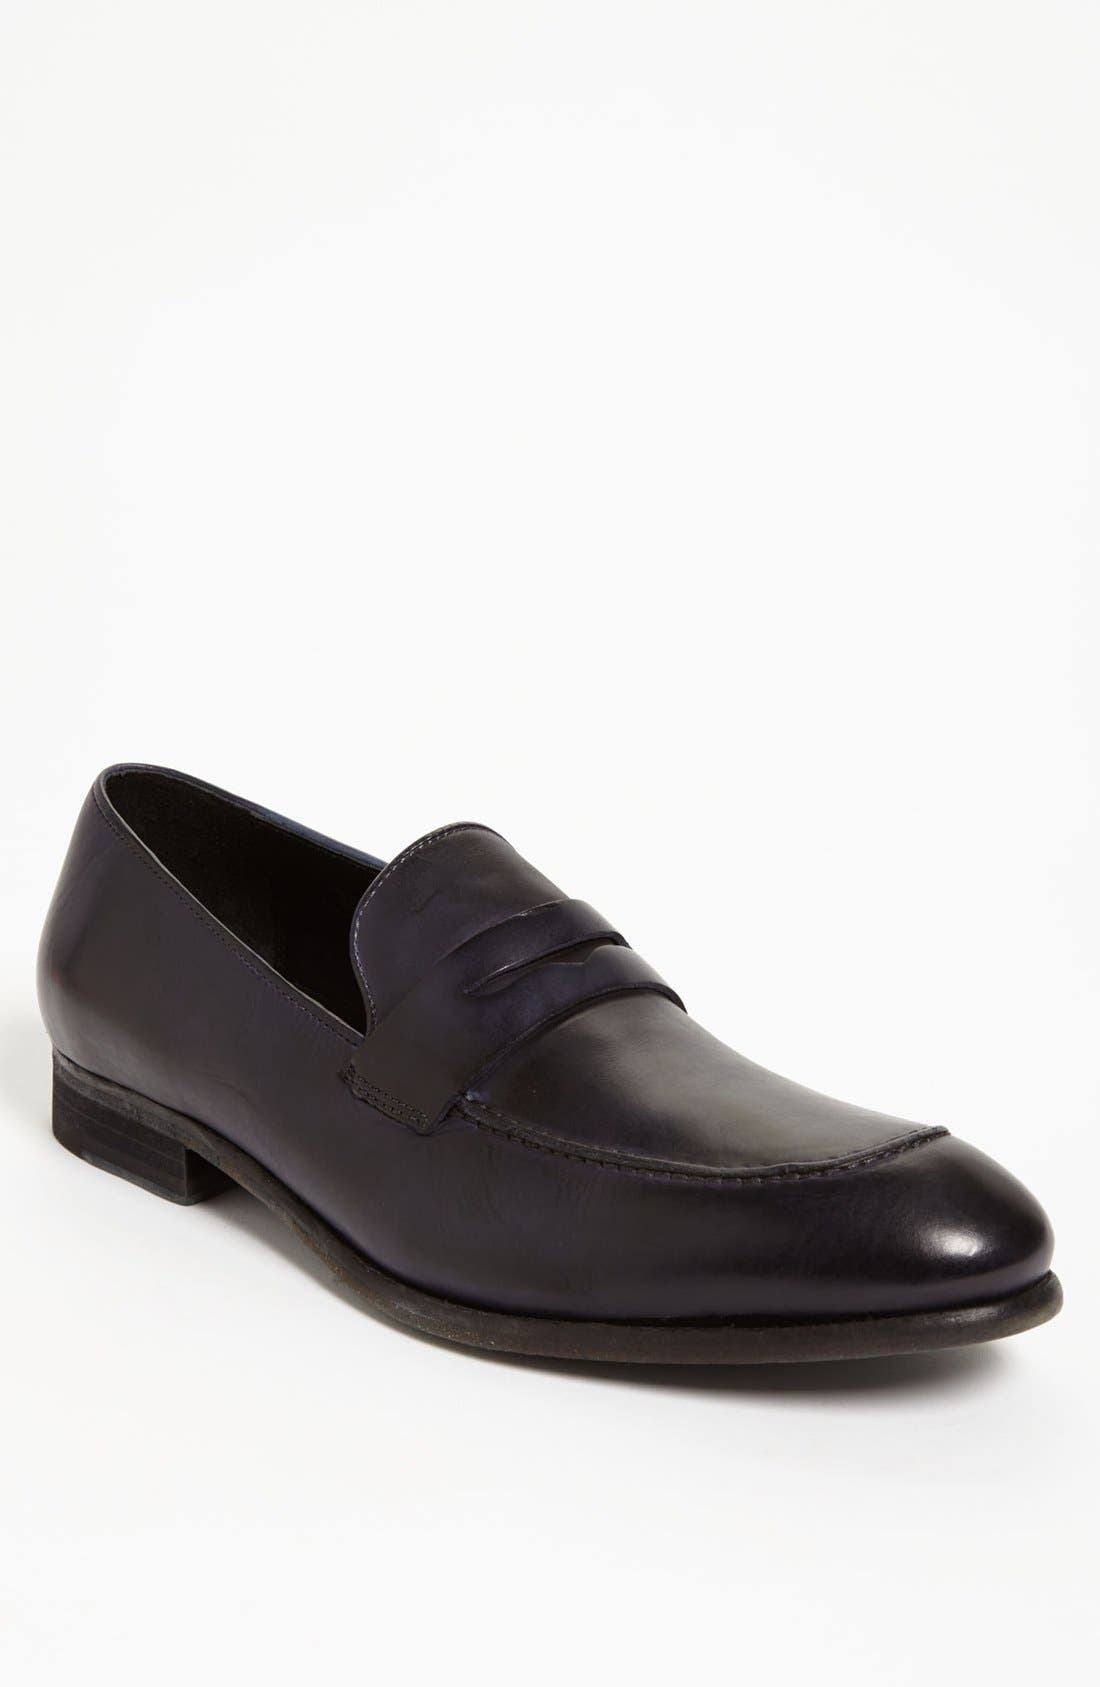 Alternate Image 1 Selected - Donald J Pliner 'Zan' Penny Loafer